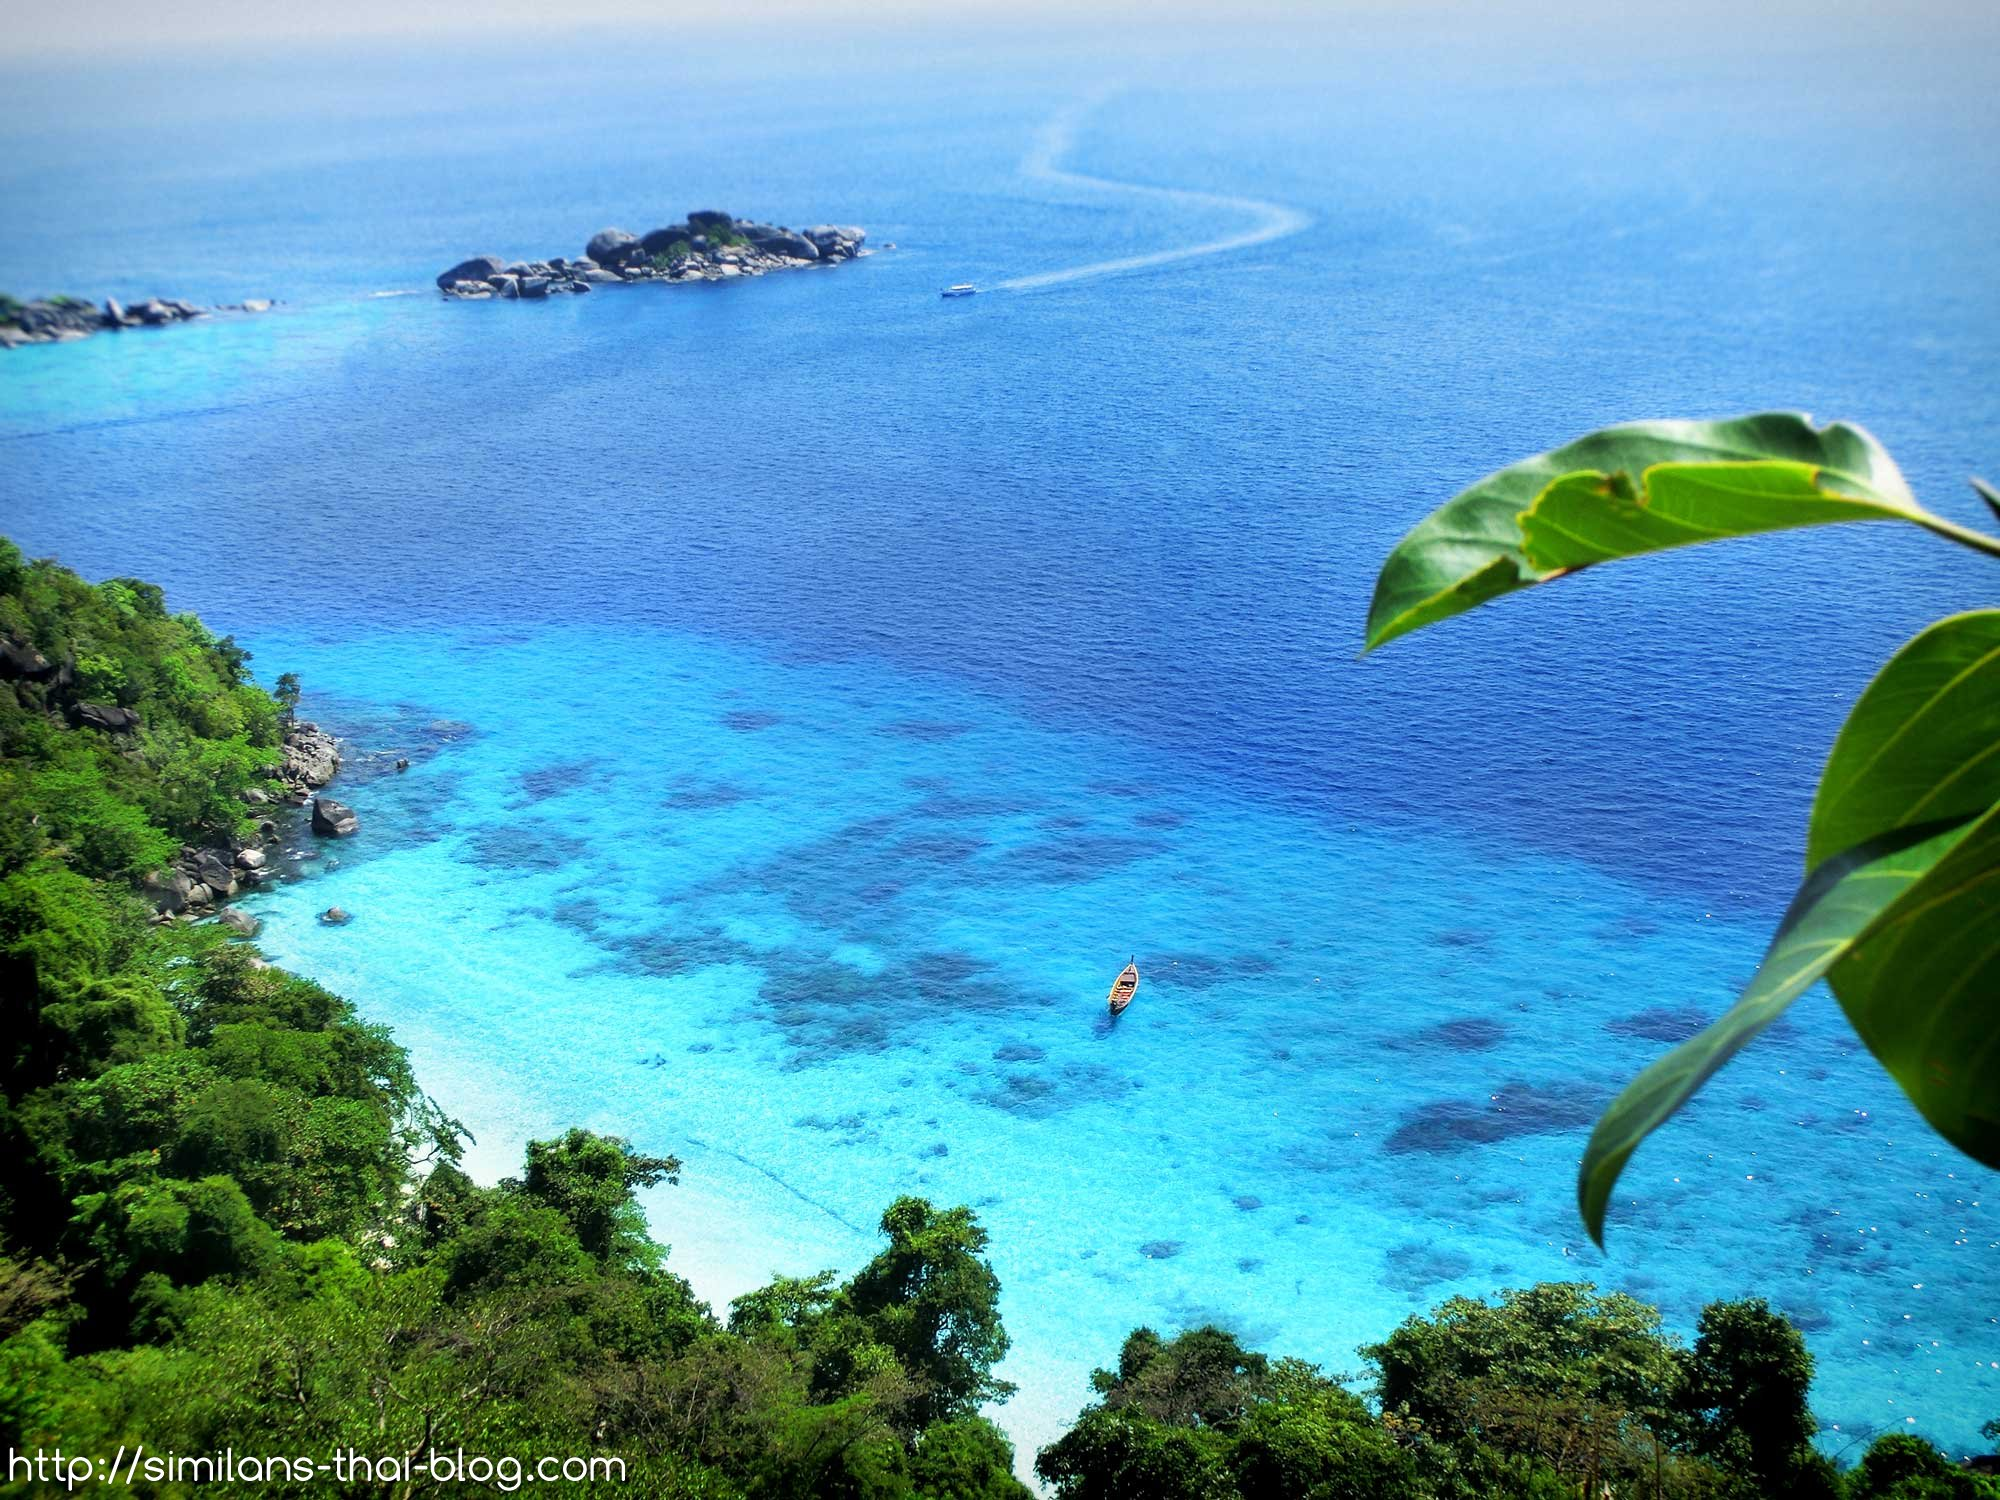 viewpoint-ko-miang-similan-island